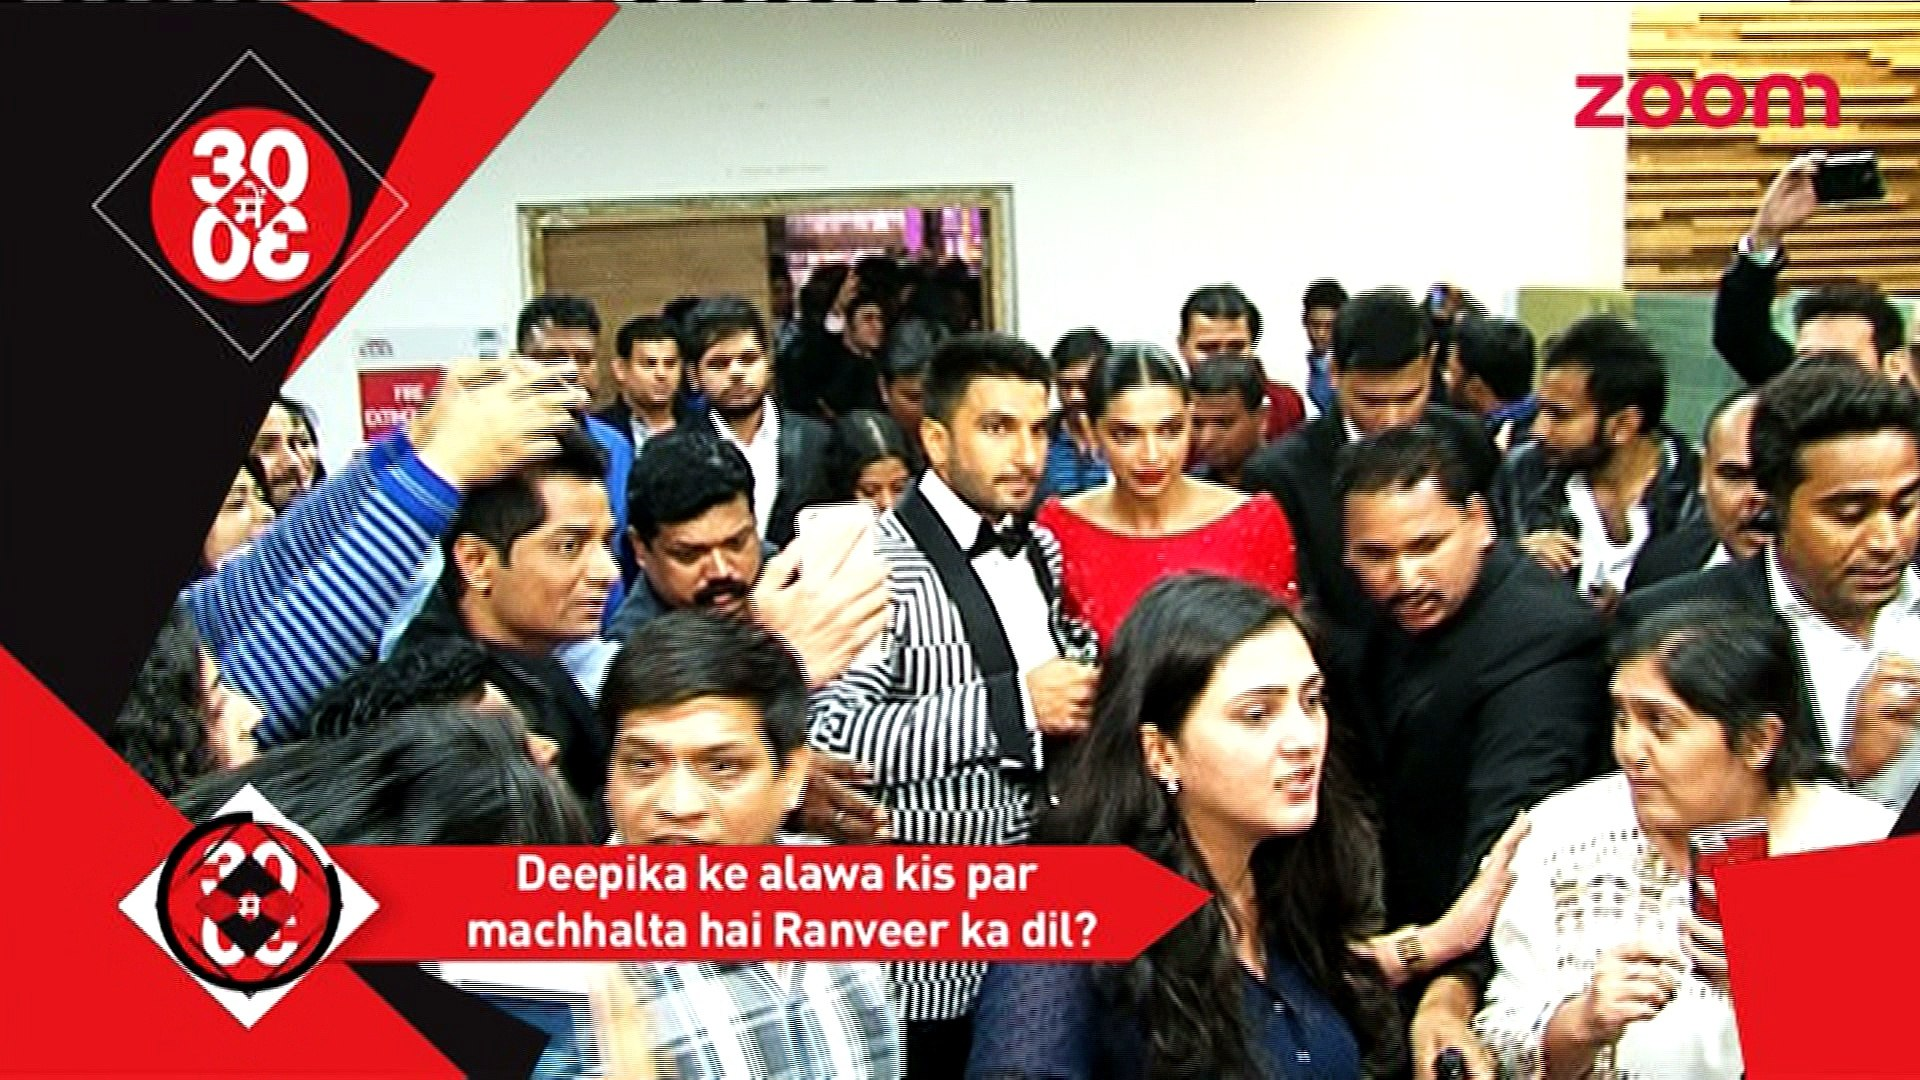 Other than Deepika Padukone, which other actress is Ranveer Singh crazy about-Bollywood News-#TMT